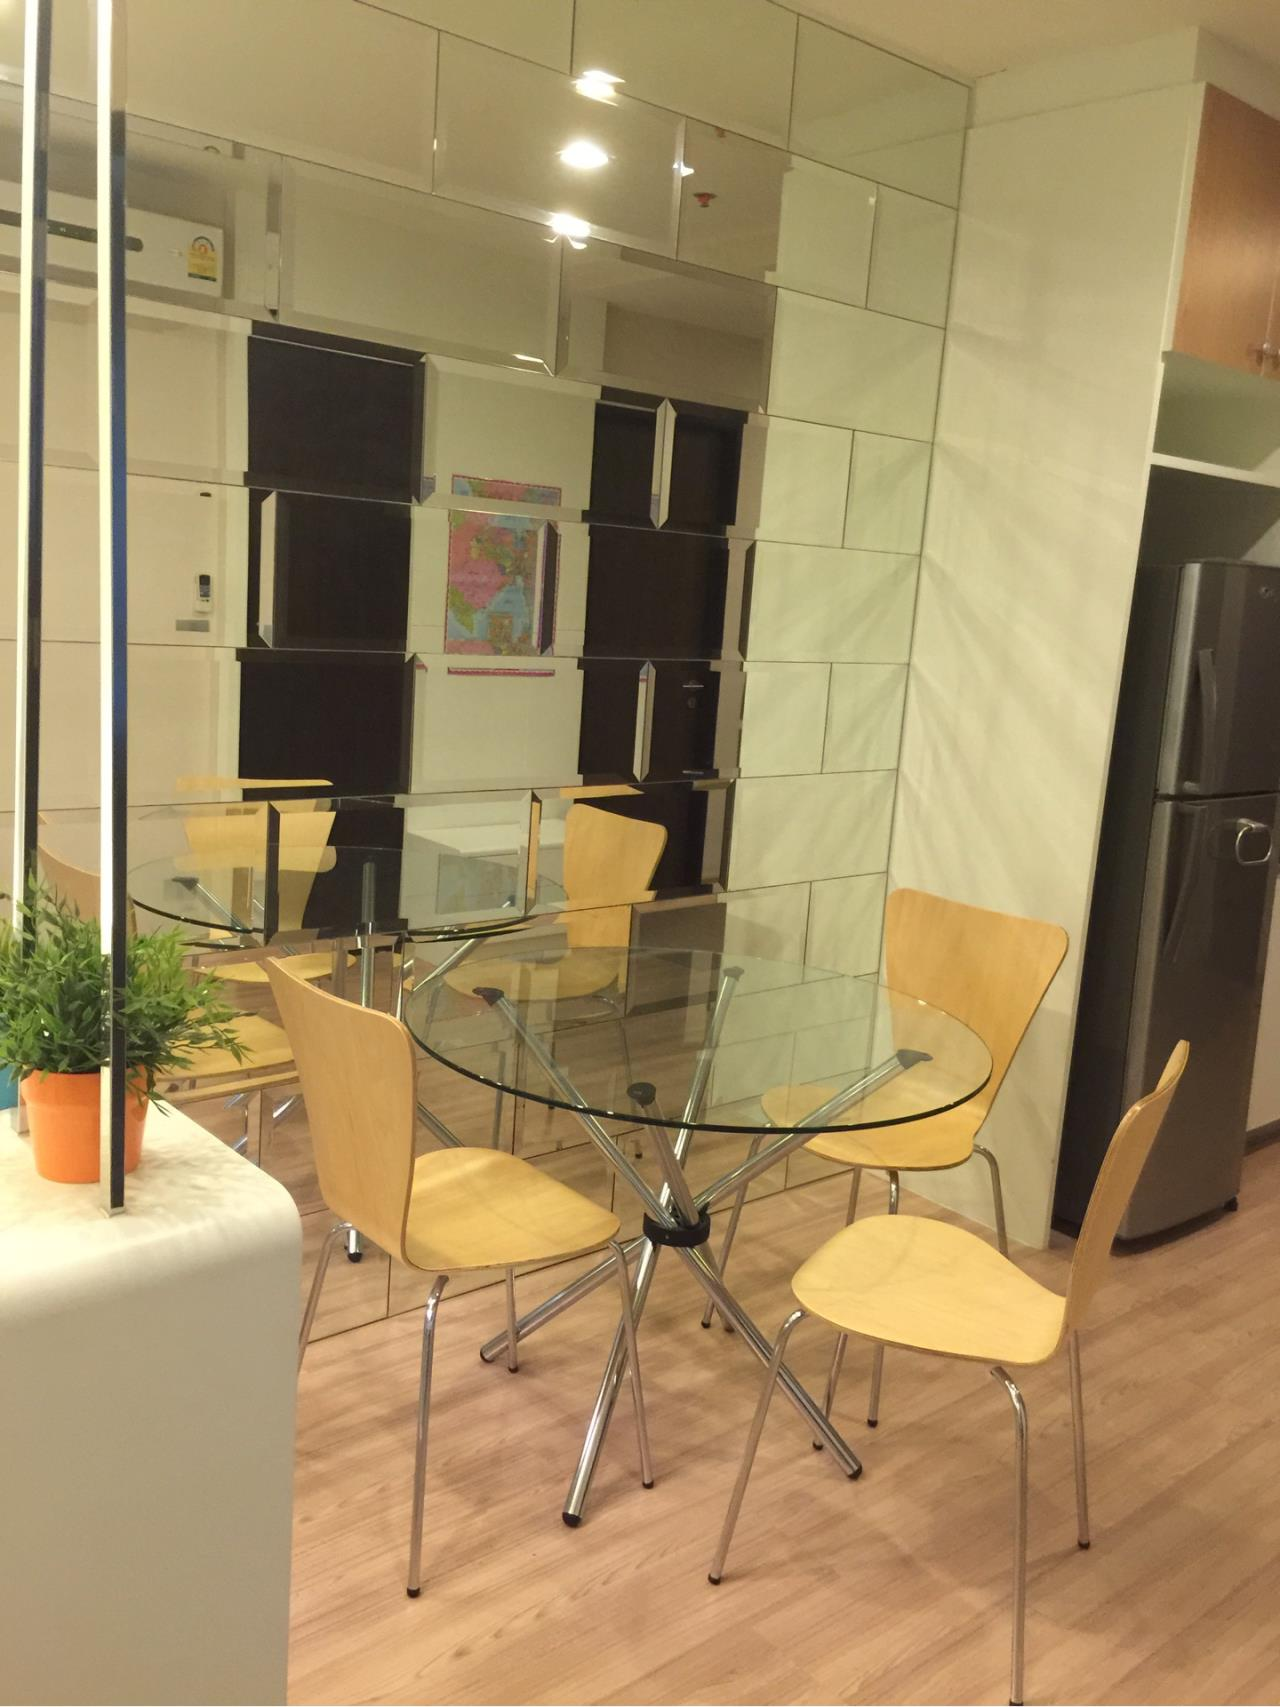 Quality Life Property Agency's Condo 1 Bedroom For Rent and For Sale  At Sky walk  35 ,  6